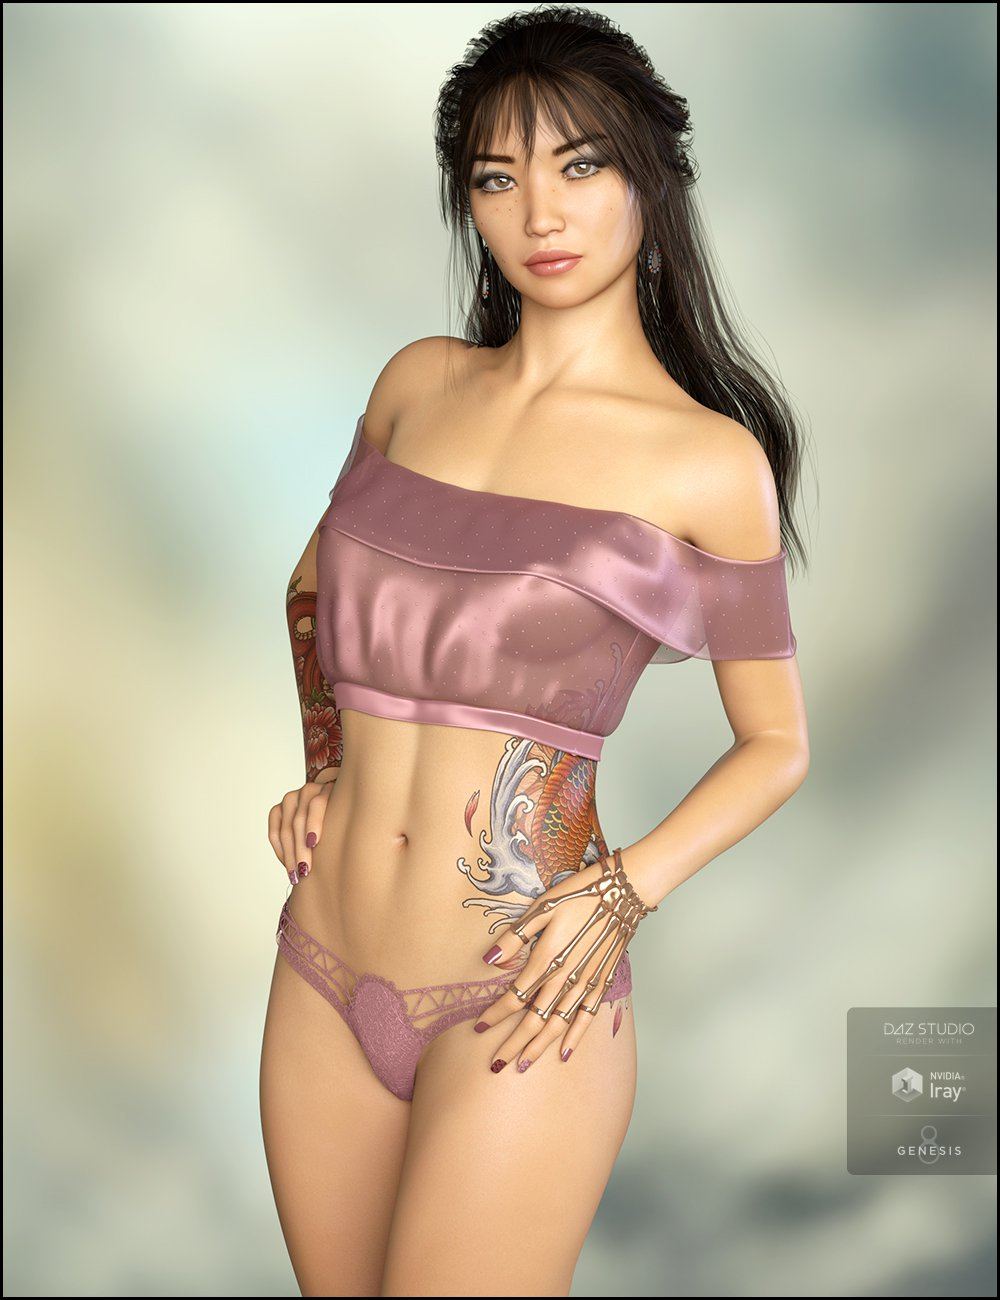 Jasmina for Genesis 8 Female_DAZ3D下载站